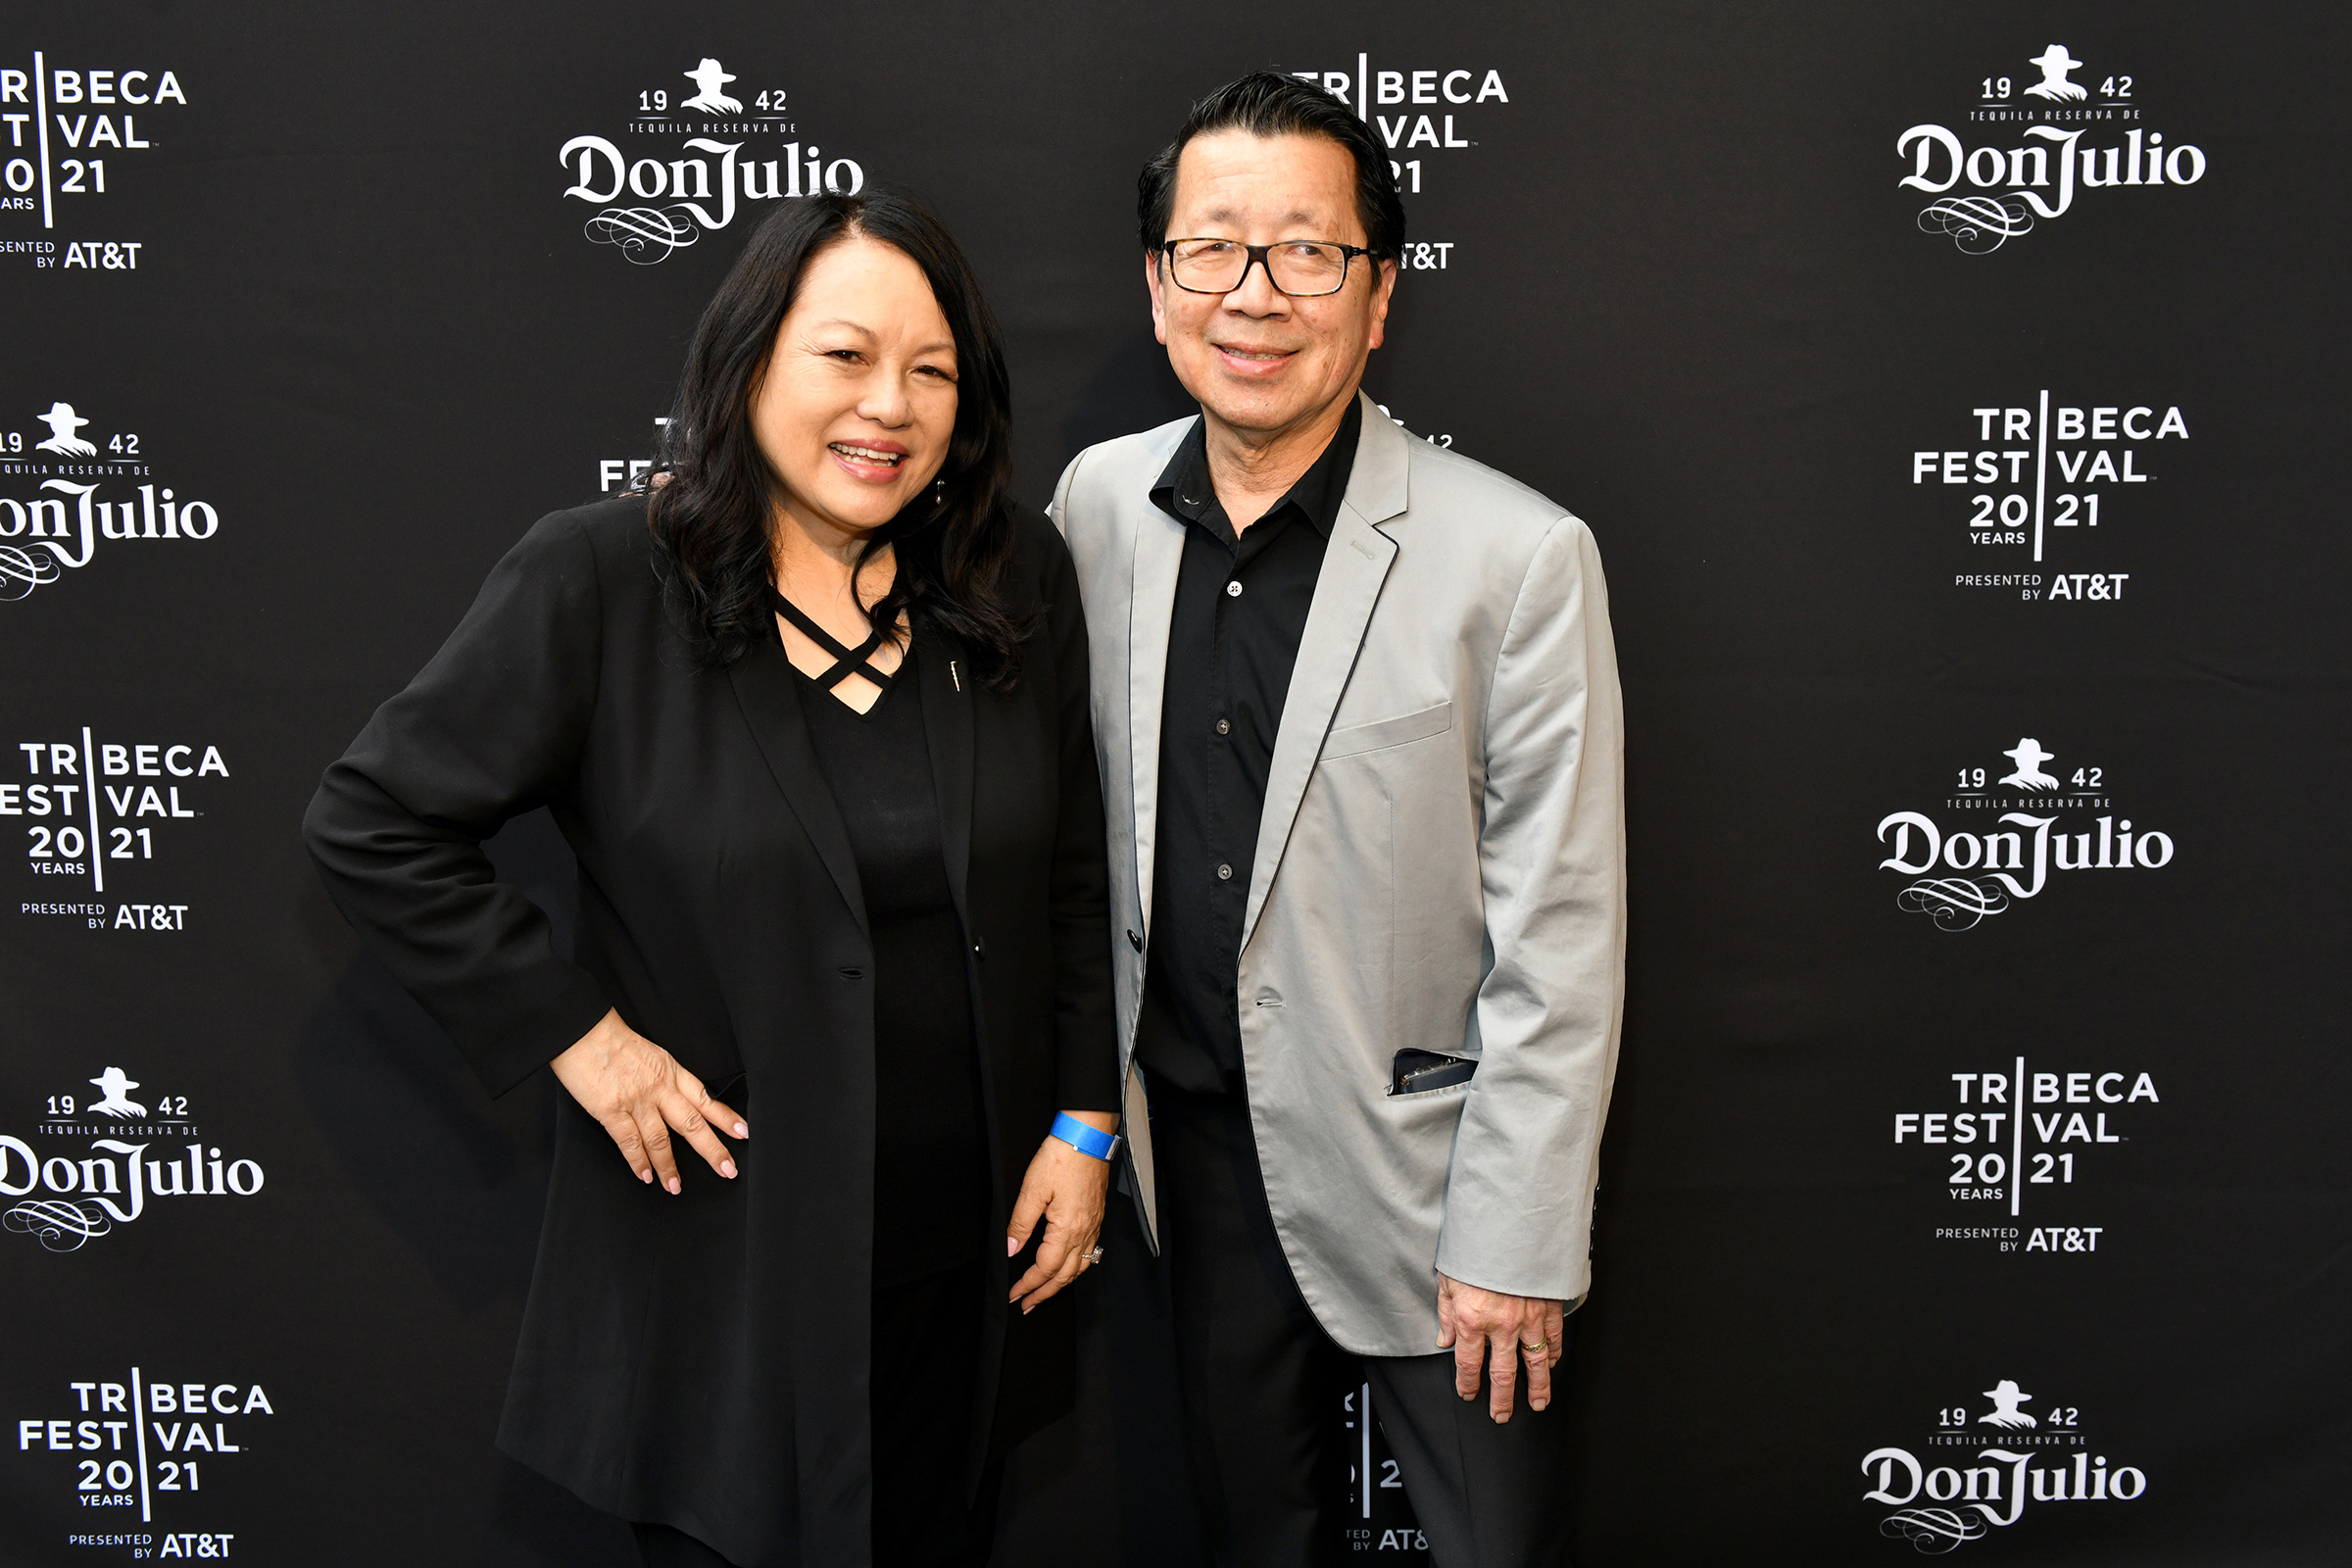 Suzanne Kai and Ben Fong-Torres at the Tribeca Film Festival